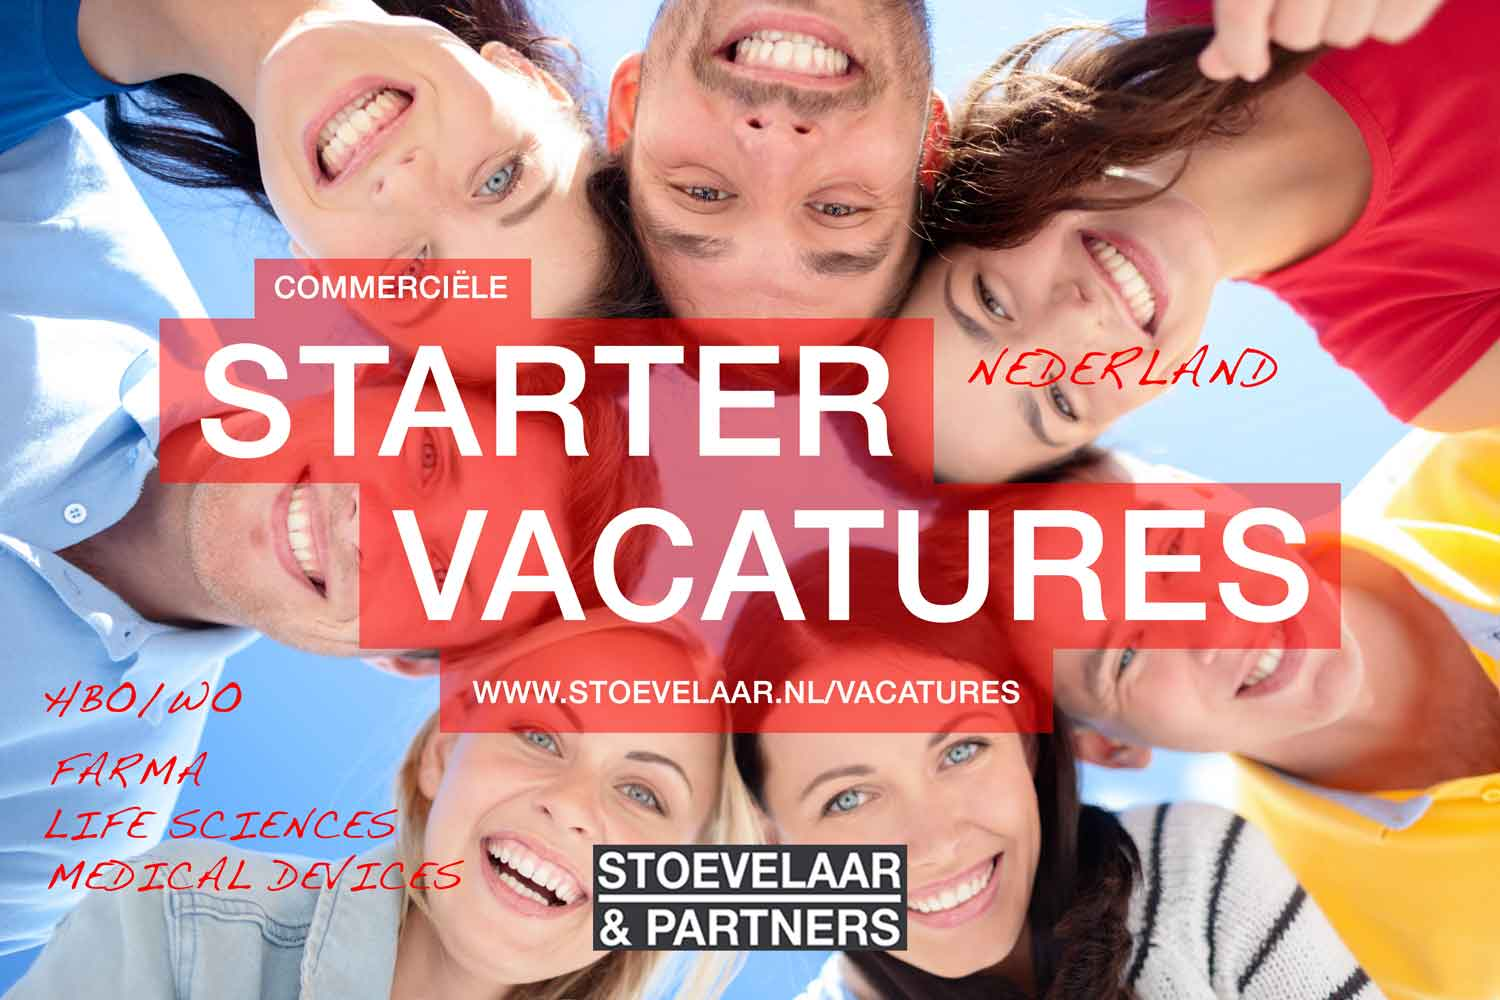 Starter vacatures medical devices farma life sciences